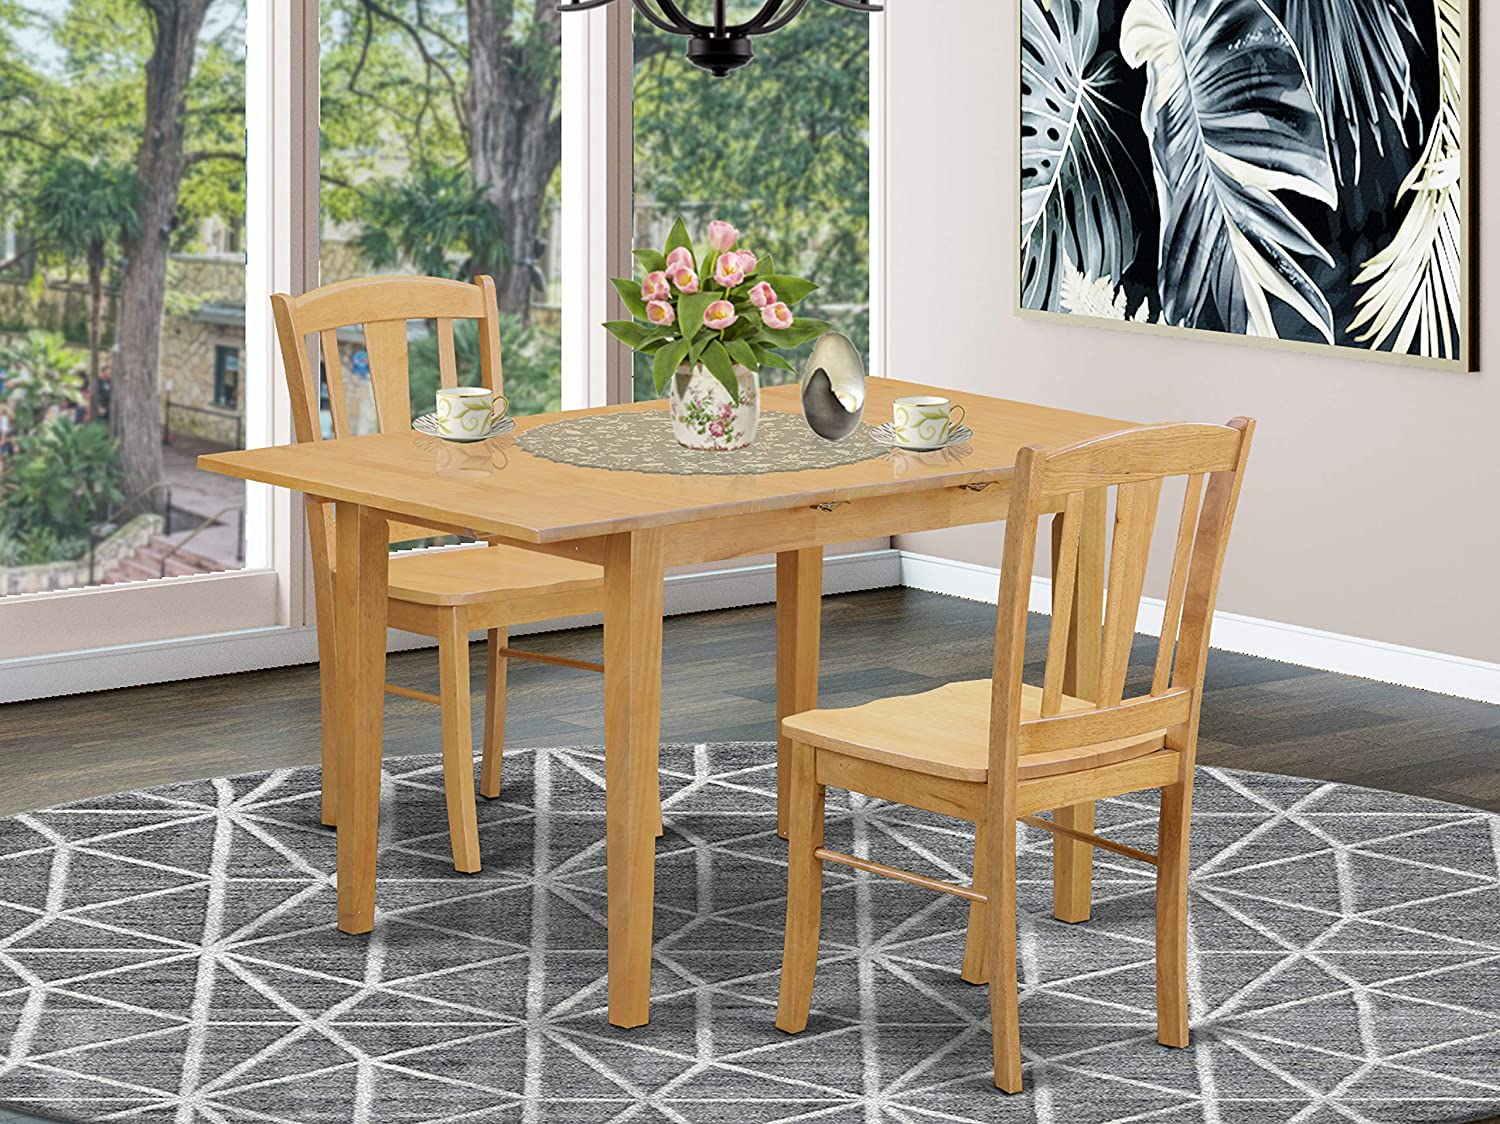 Amazon Com 3 Pc Dining Room Set Dining Table For Small Spaces And 2 Dining Chairs Furniture Decor